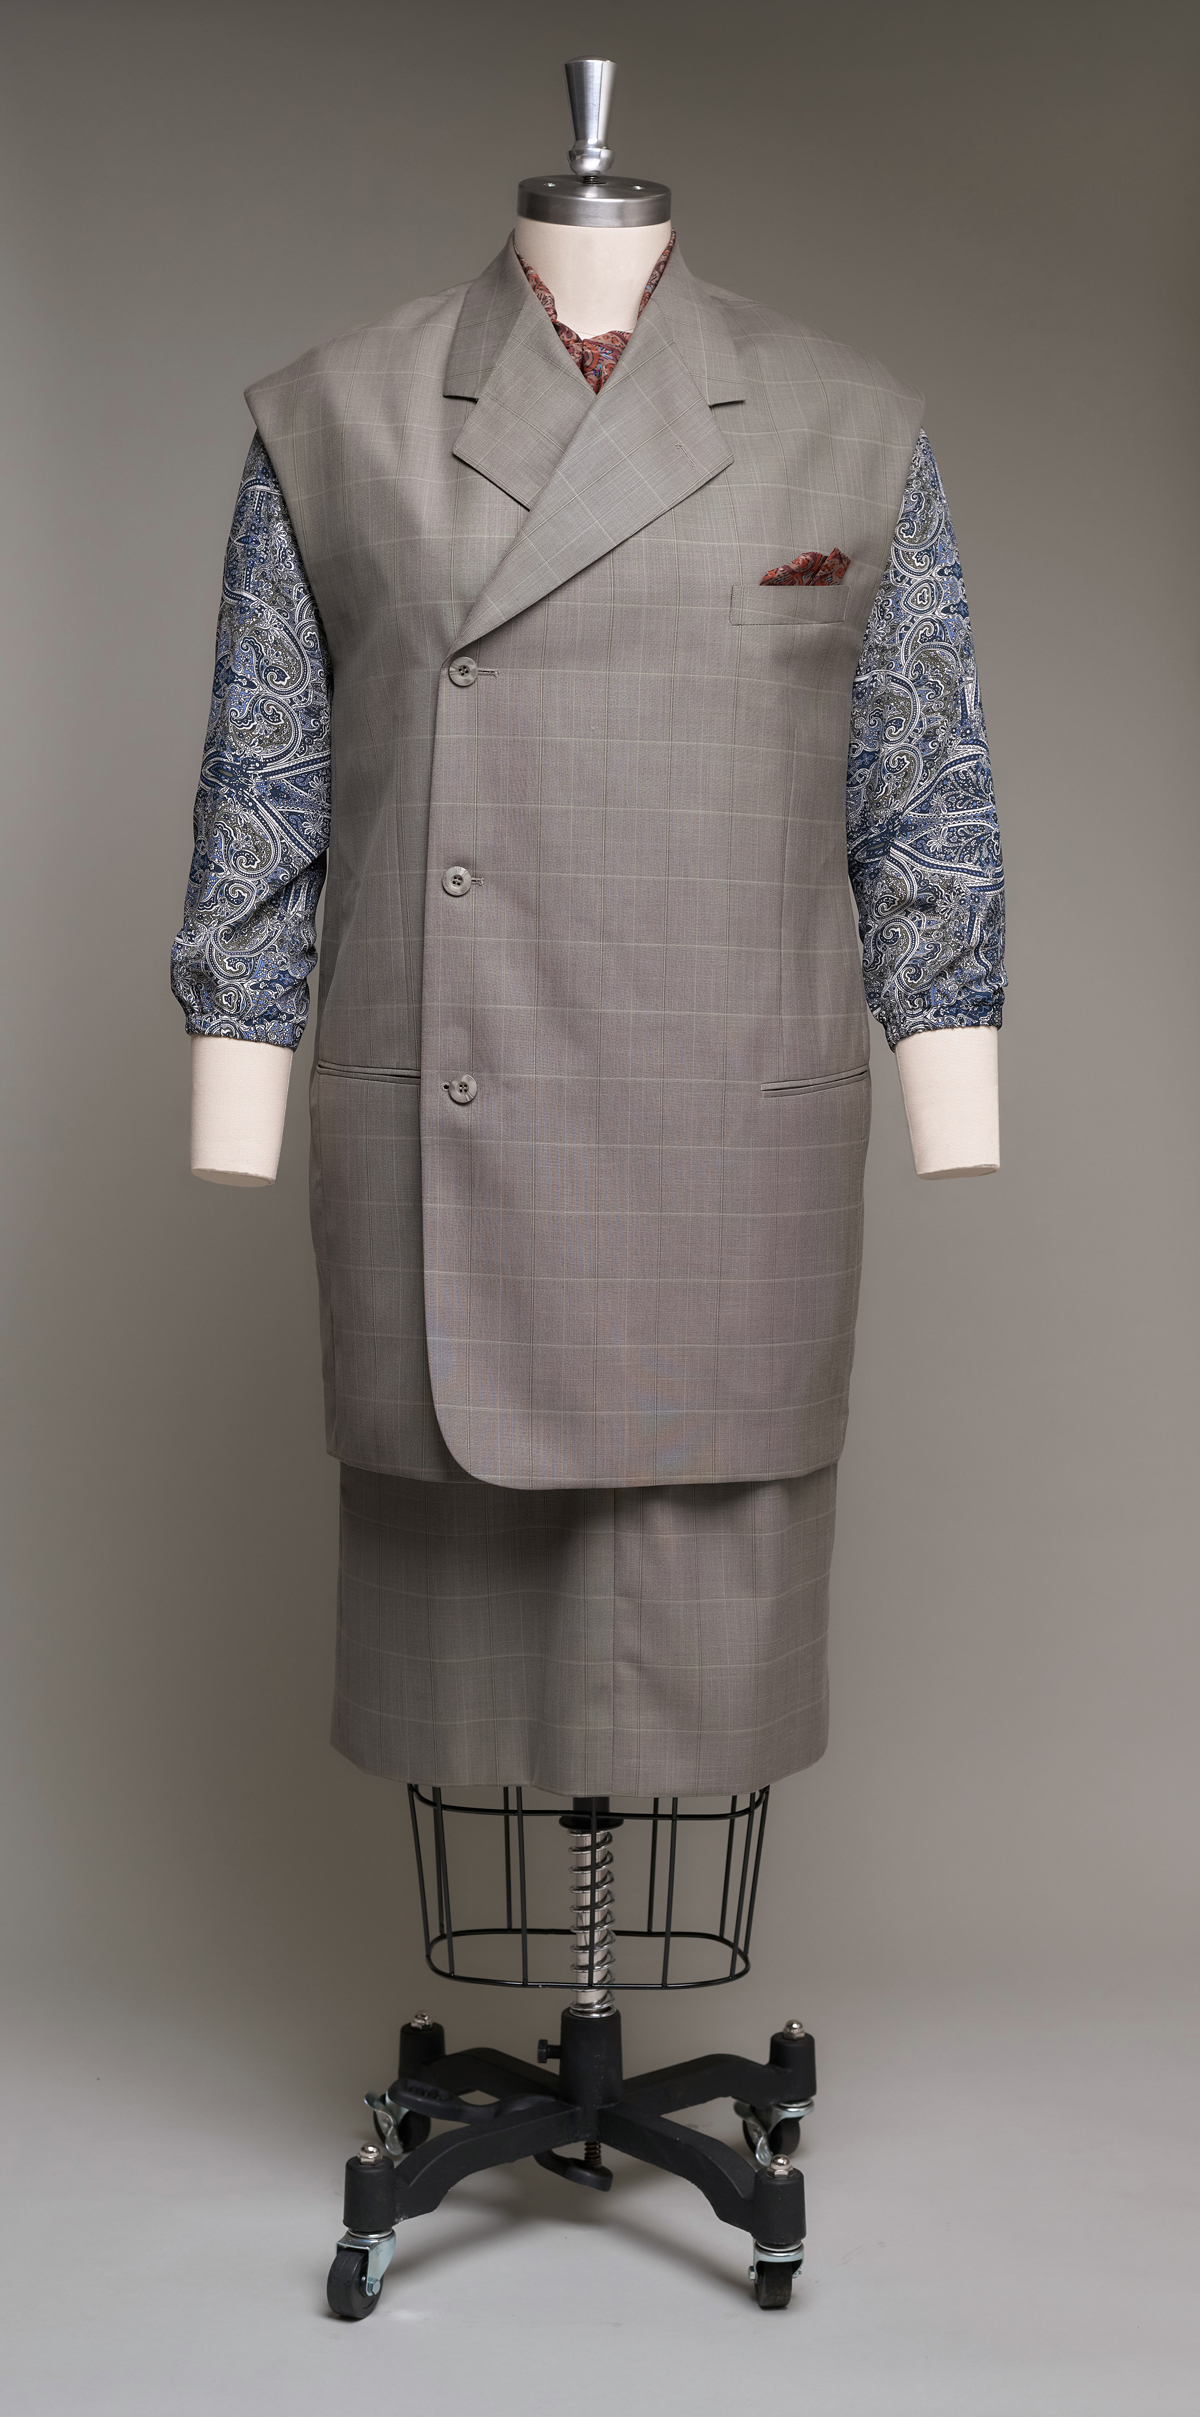 Sleeveless women's suit with paisley blouse on dress form